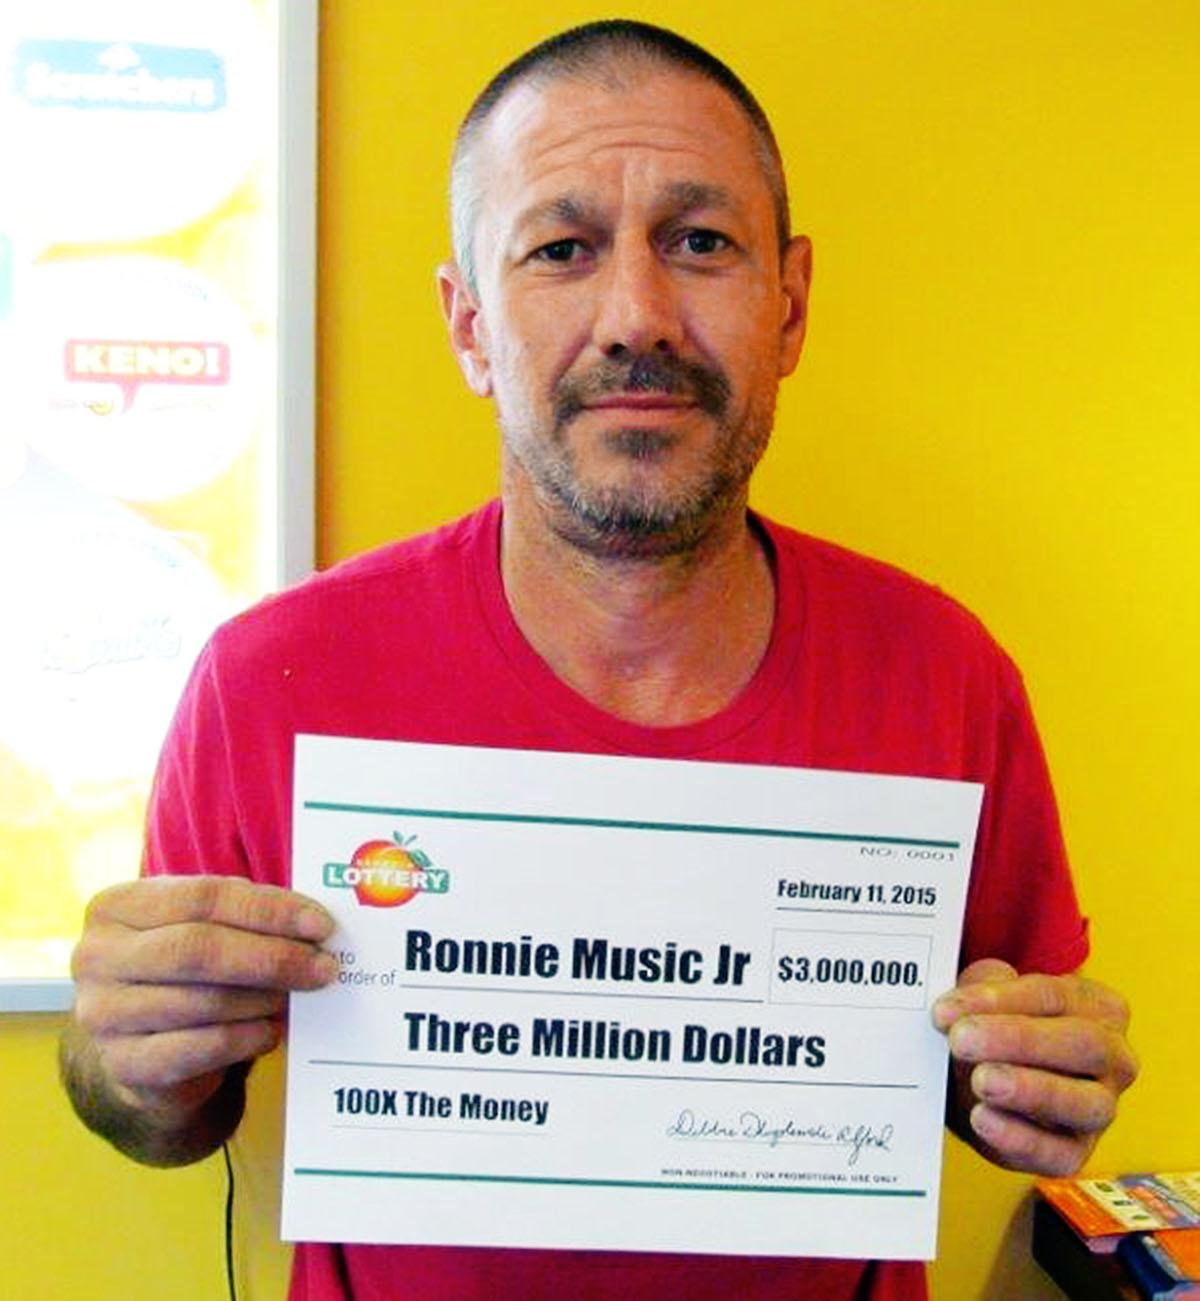 Ronnie Music